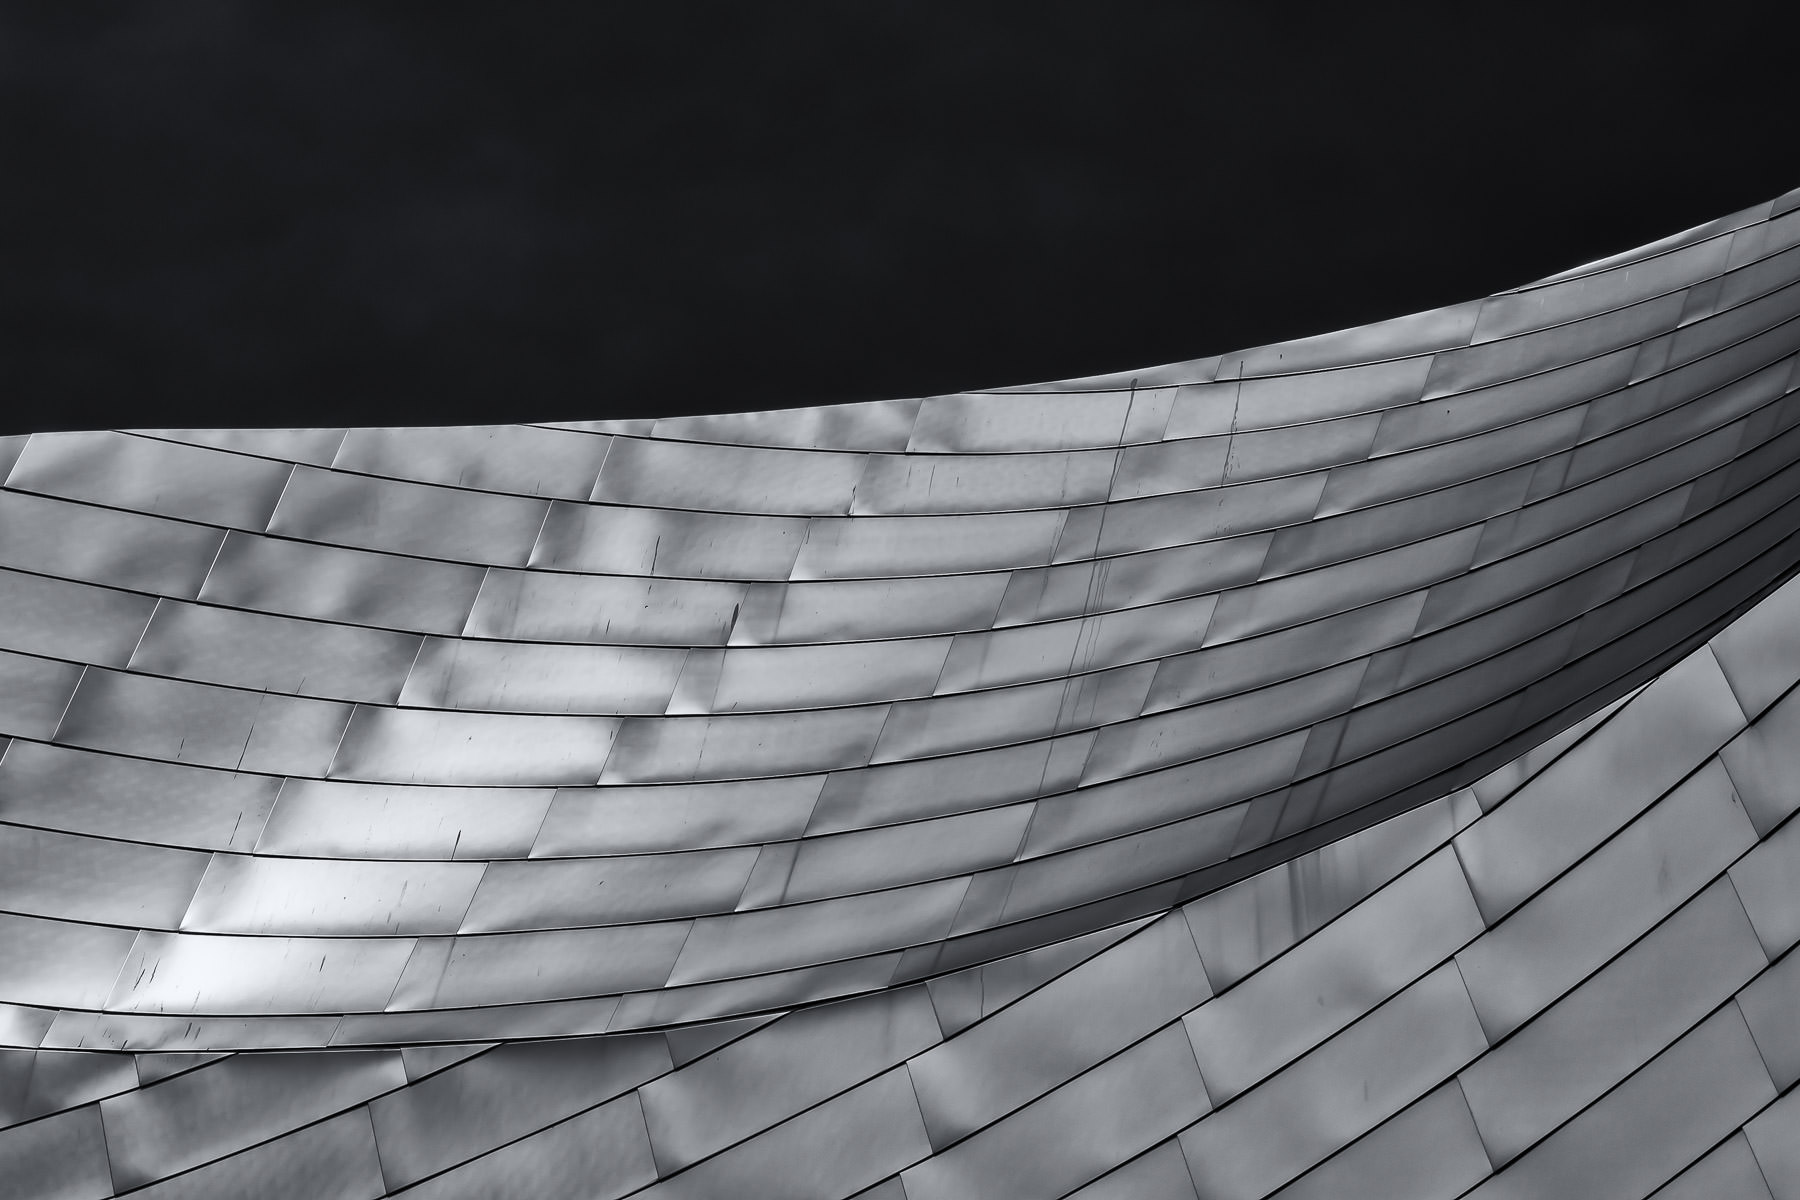 Architectural detail of Chicago's Millennium Park's Jay Pritzker Pavillion, an open-air concert venue designed by Frank Gehry and opened in 2004.